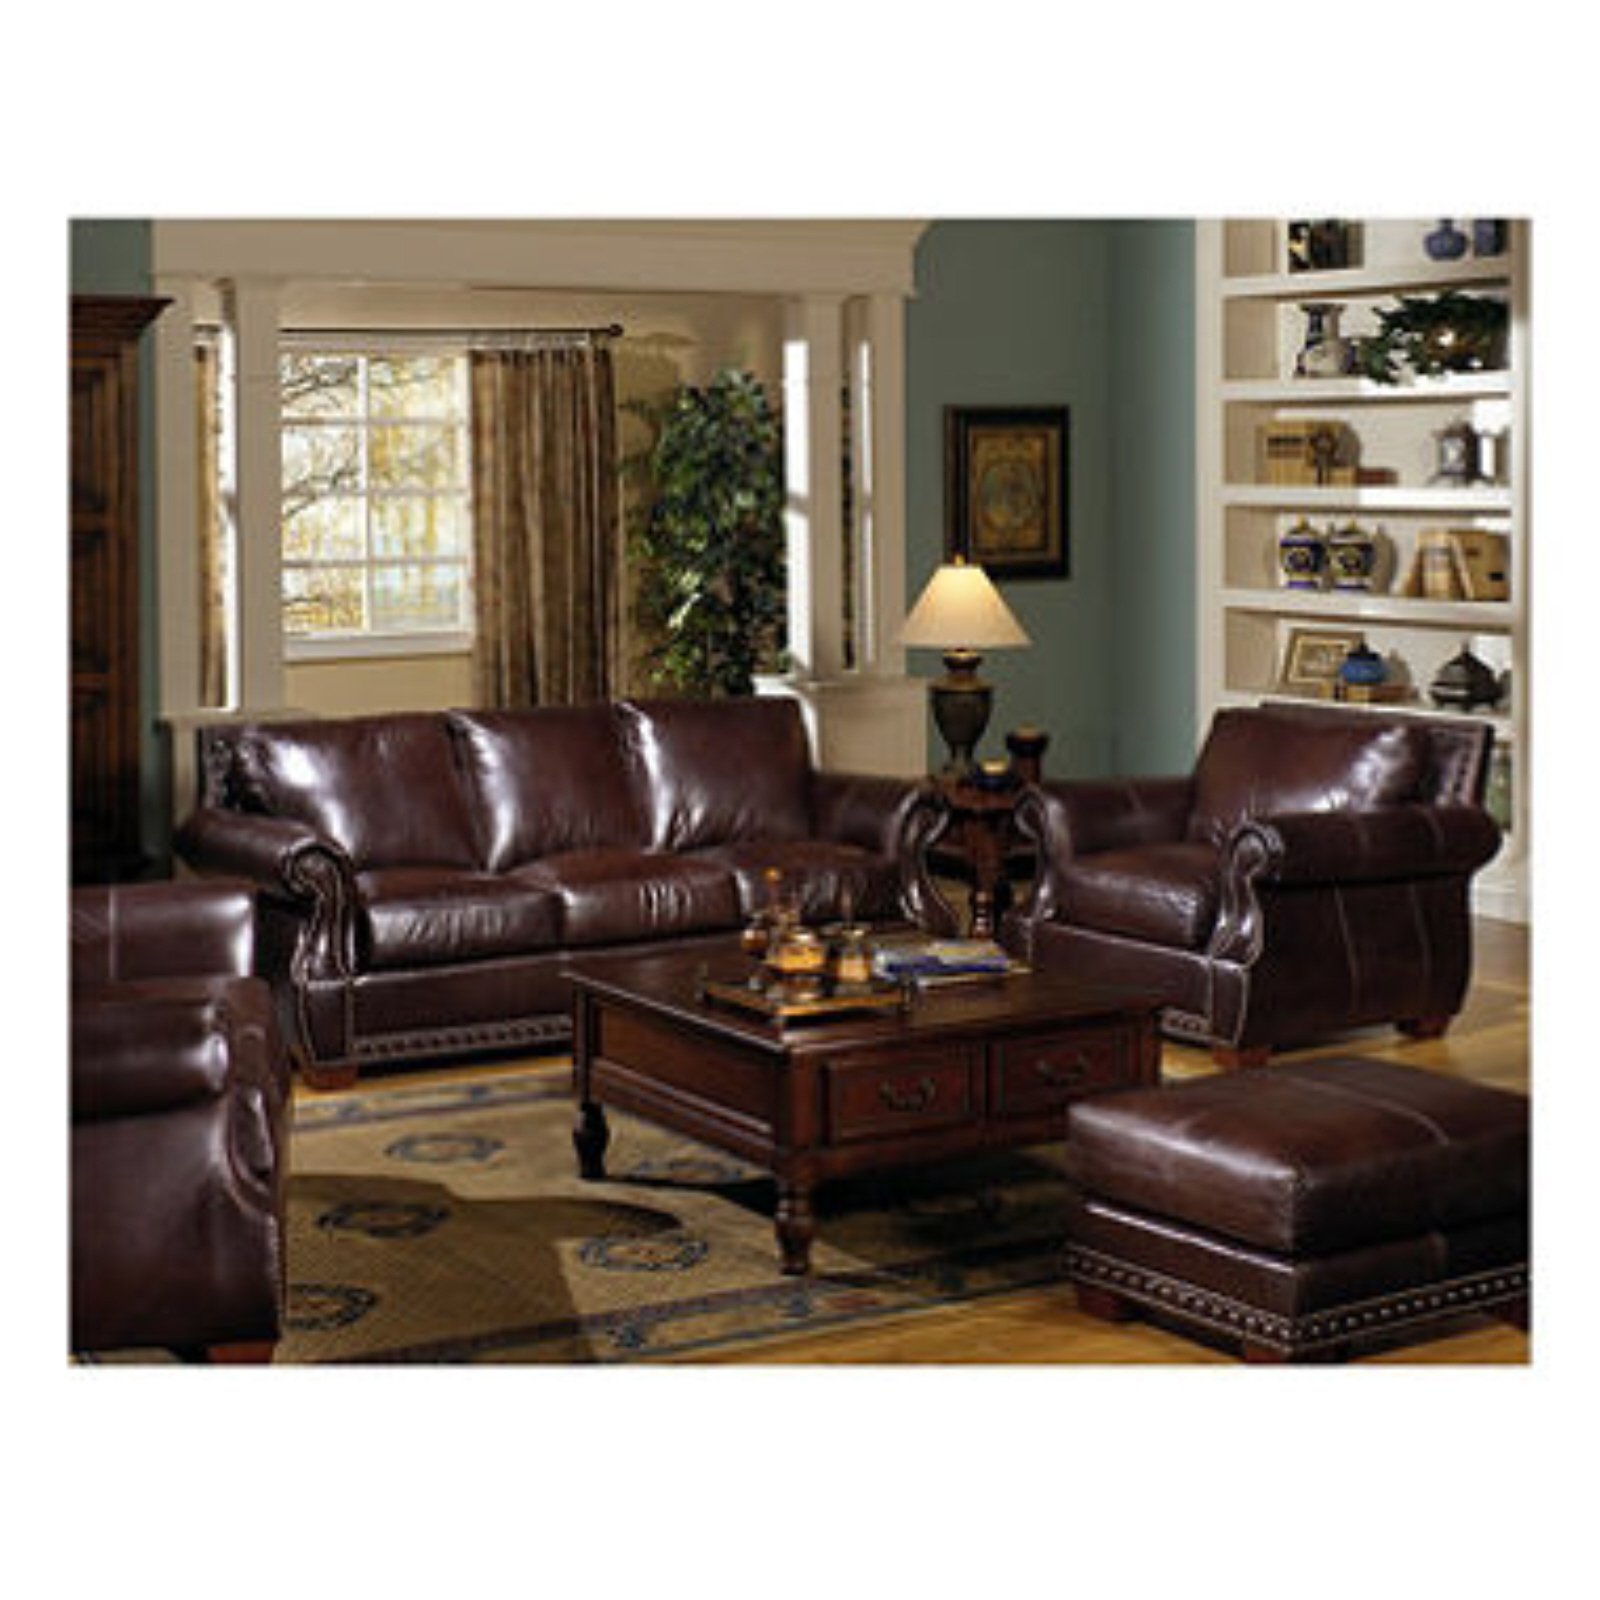 Chesterfield Set 4 Pc Livingroom Furniture Set New Leather Couch Set Sofas Loveseats